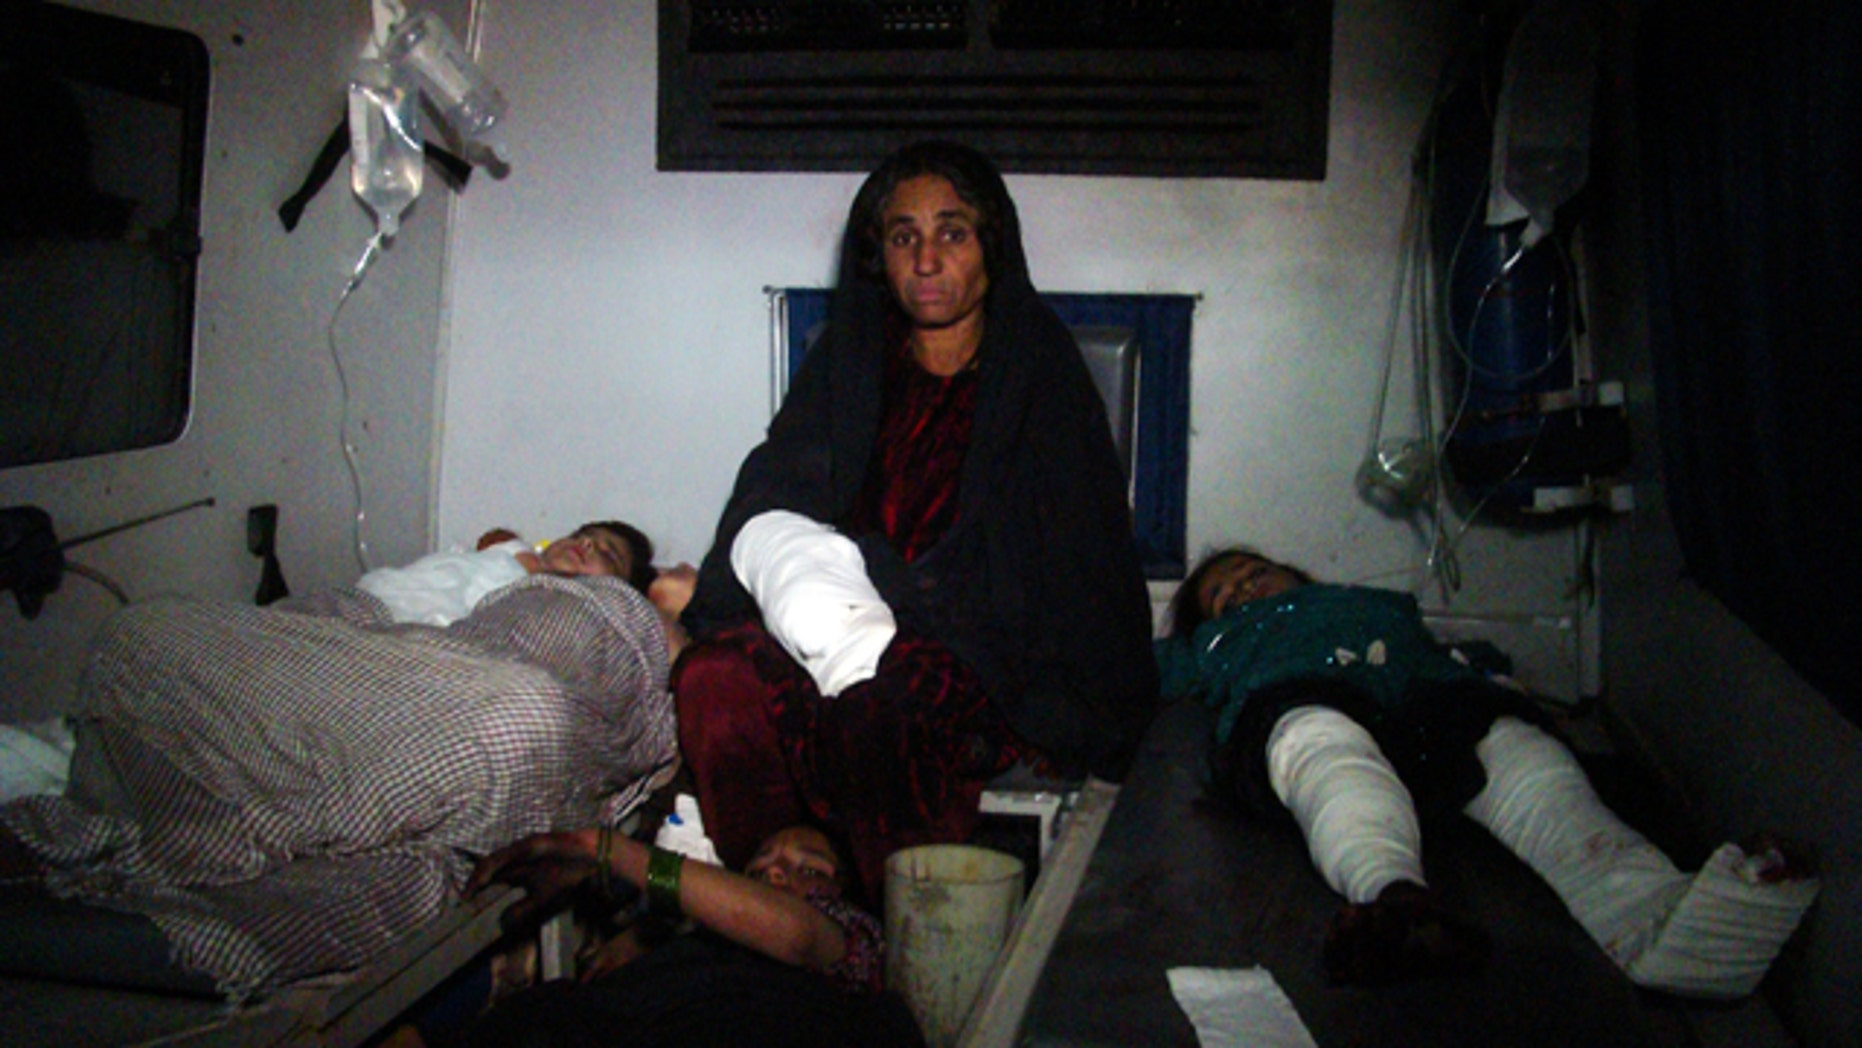 Dec. 31, 2014: Injured Afghan children are treated at a hospital in Helmand province, south of Kabul. A rocket fired amid fighting between Taliban insurgents and Afghan soldiers killed at least 26 people at a nearby wedding party Thursday night, authorities said, a grim end to a year that saw the end of the 13-year U.S.-led combat mission there. (AP Photo/Abdul Khaliq)